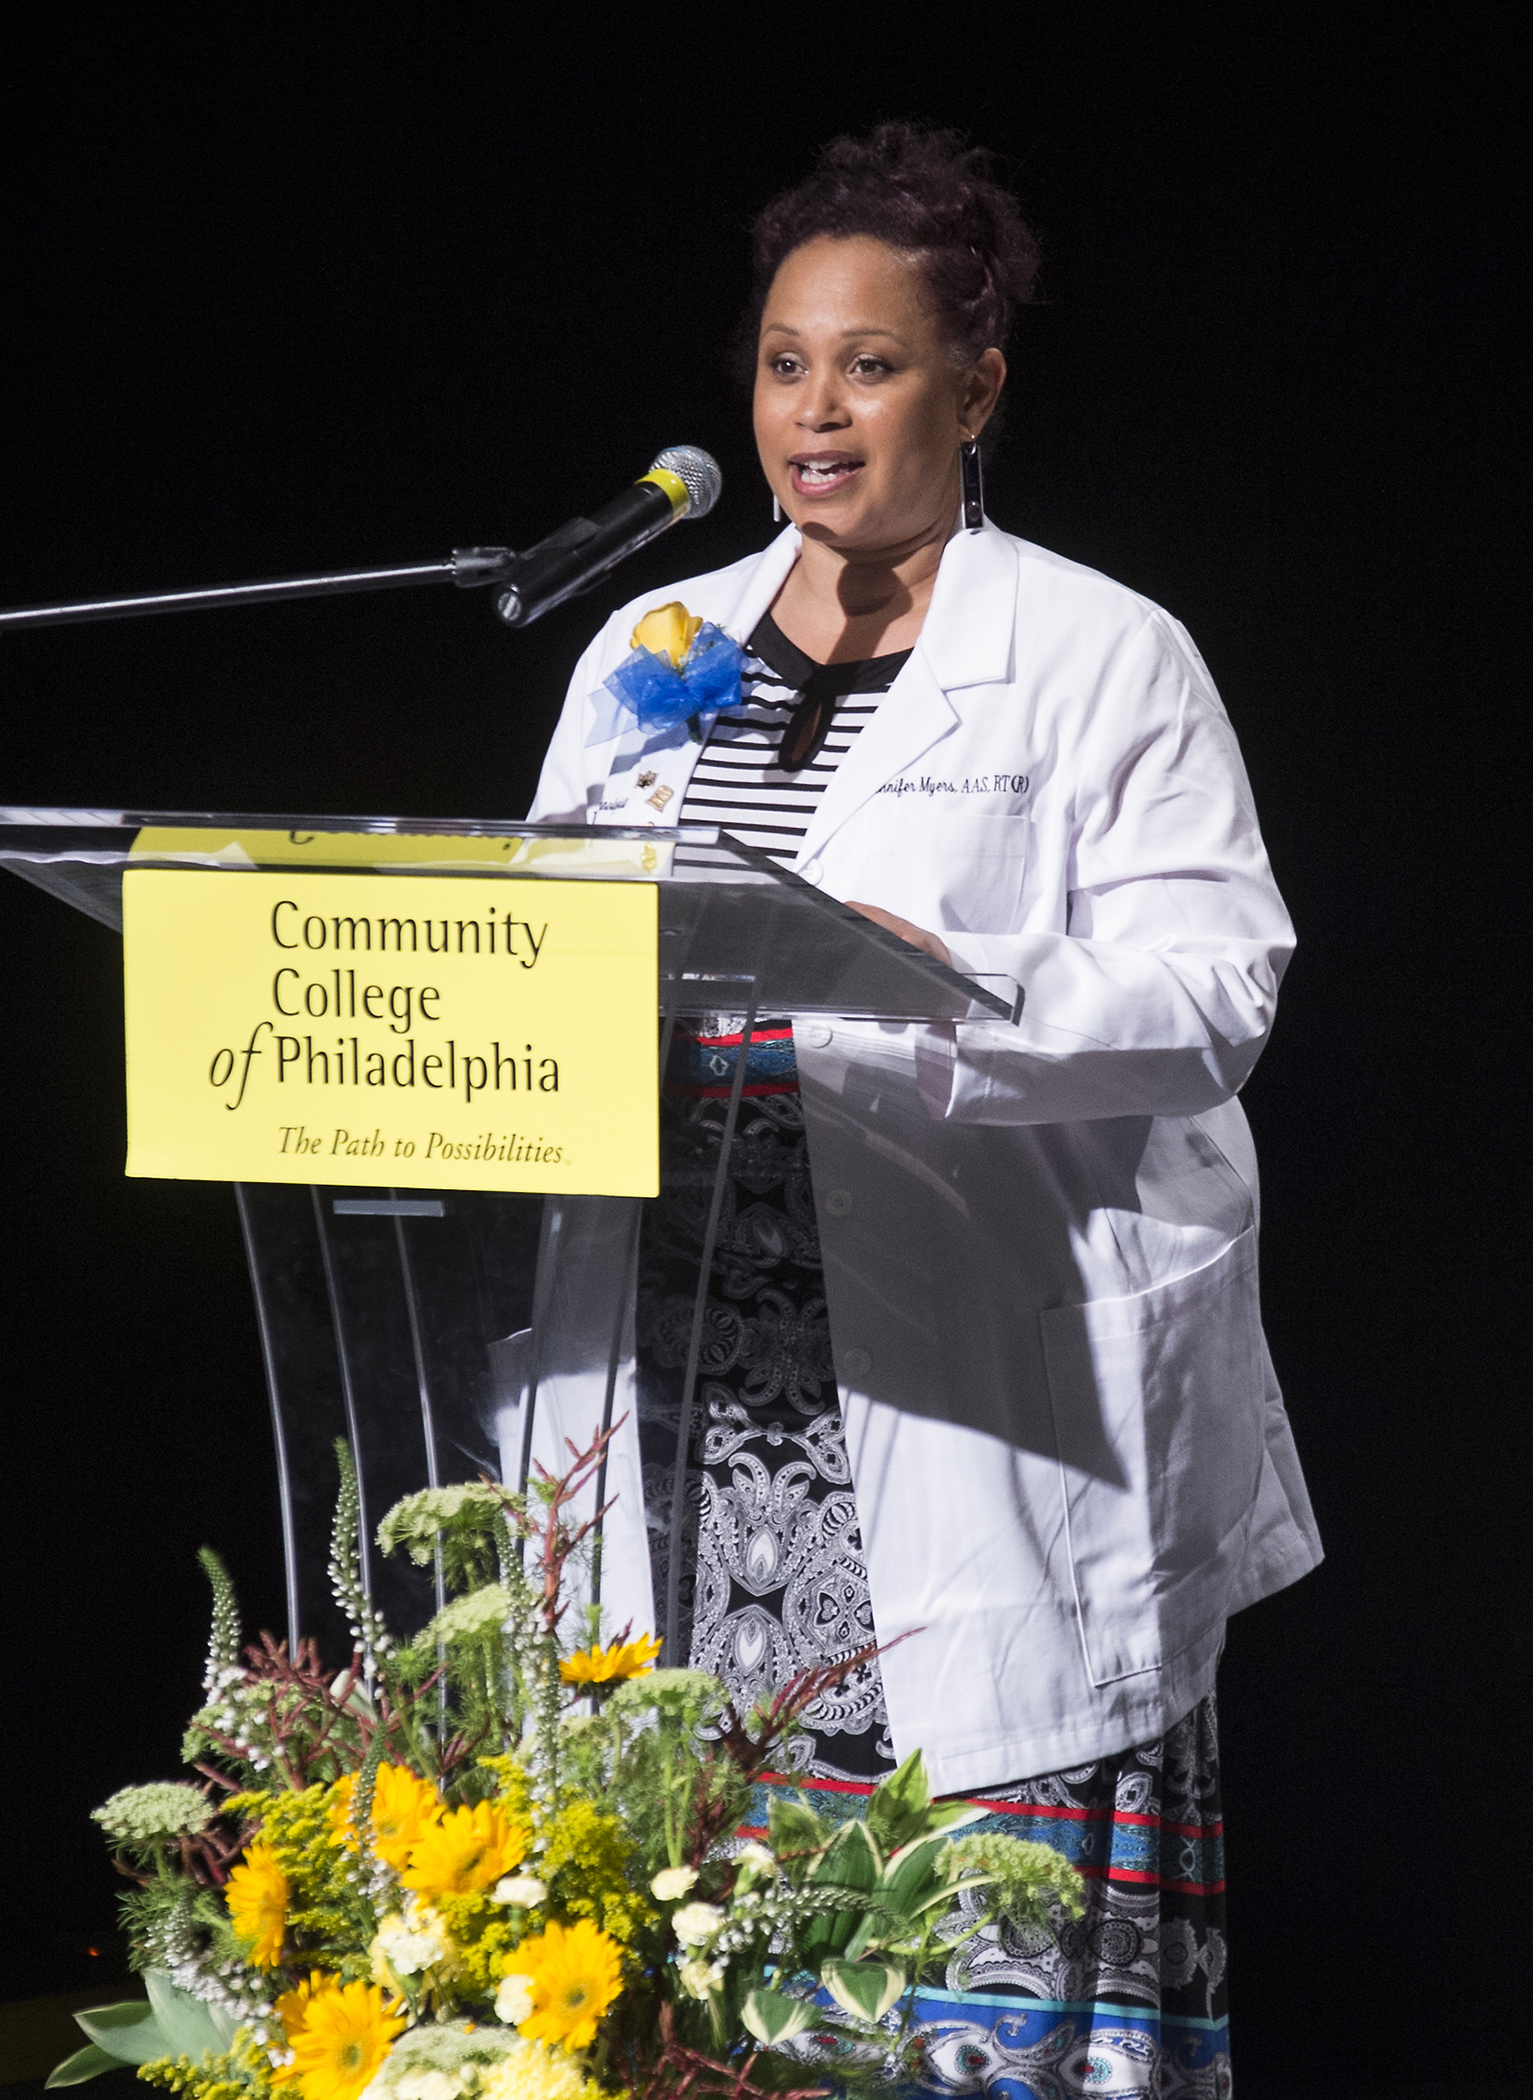 Student in the Diagnostic Medical Imaging program at a CCP podium.